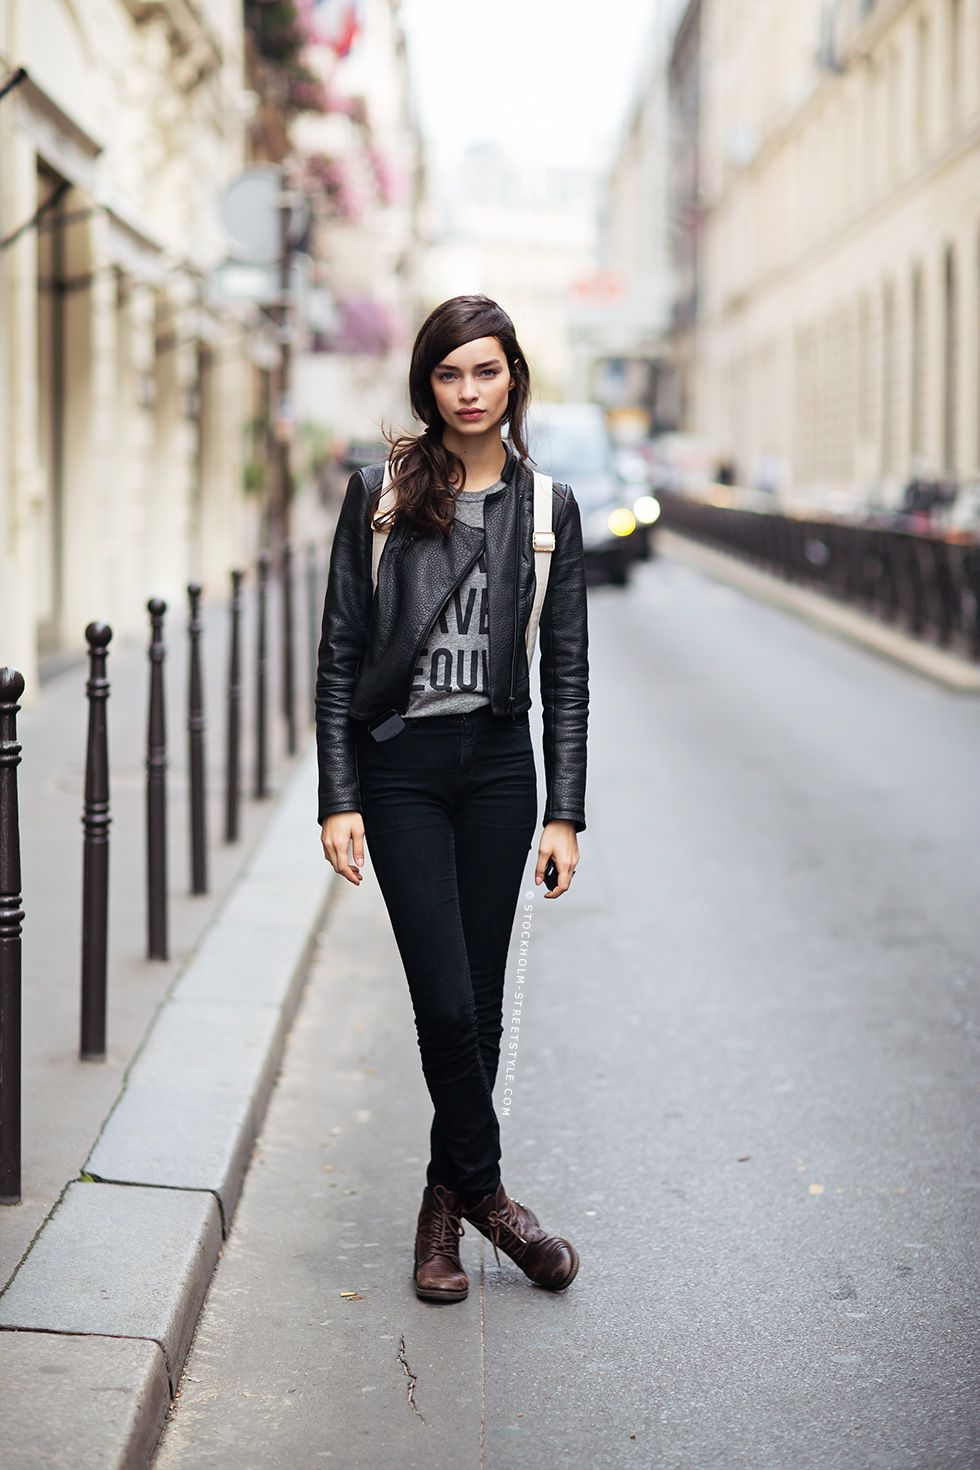 6c3094a0b68  black  pants  skinny  jeans  leather  jacket  shirt  brown  boots  street   style  womens  fashion  edgy